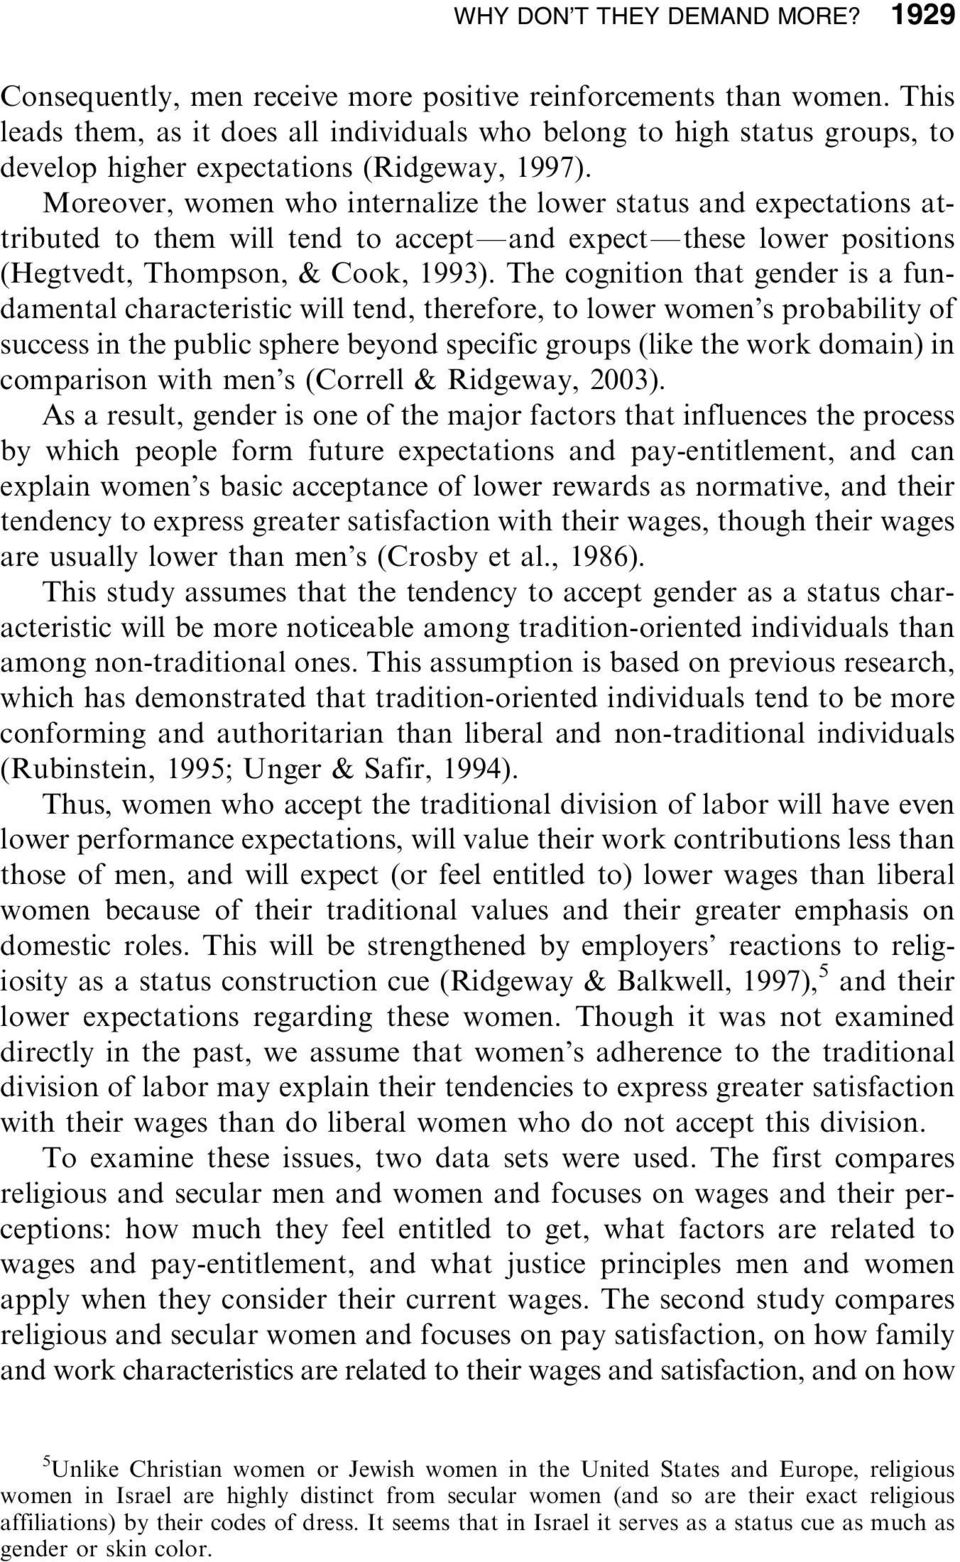 Moreover, women who internalize the lower status and expectations attributed to them will tend to acceptfand expectfthese lower positions (Hegtvedt, Thompson, & Cook, 1993).